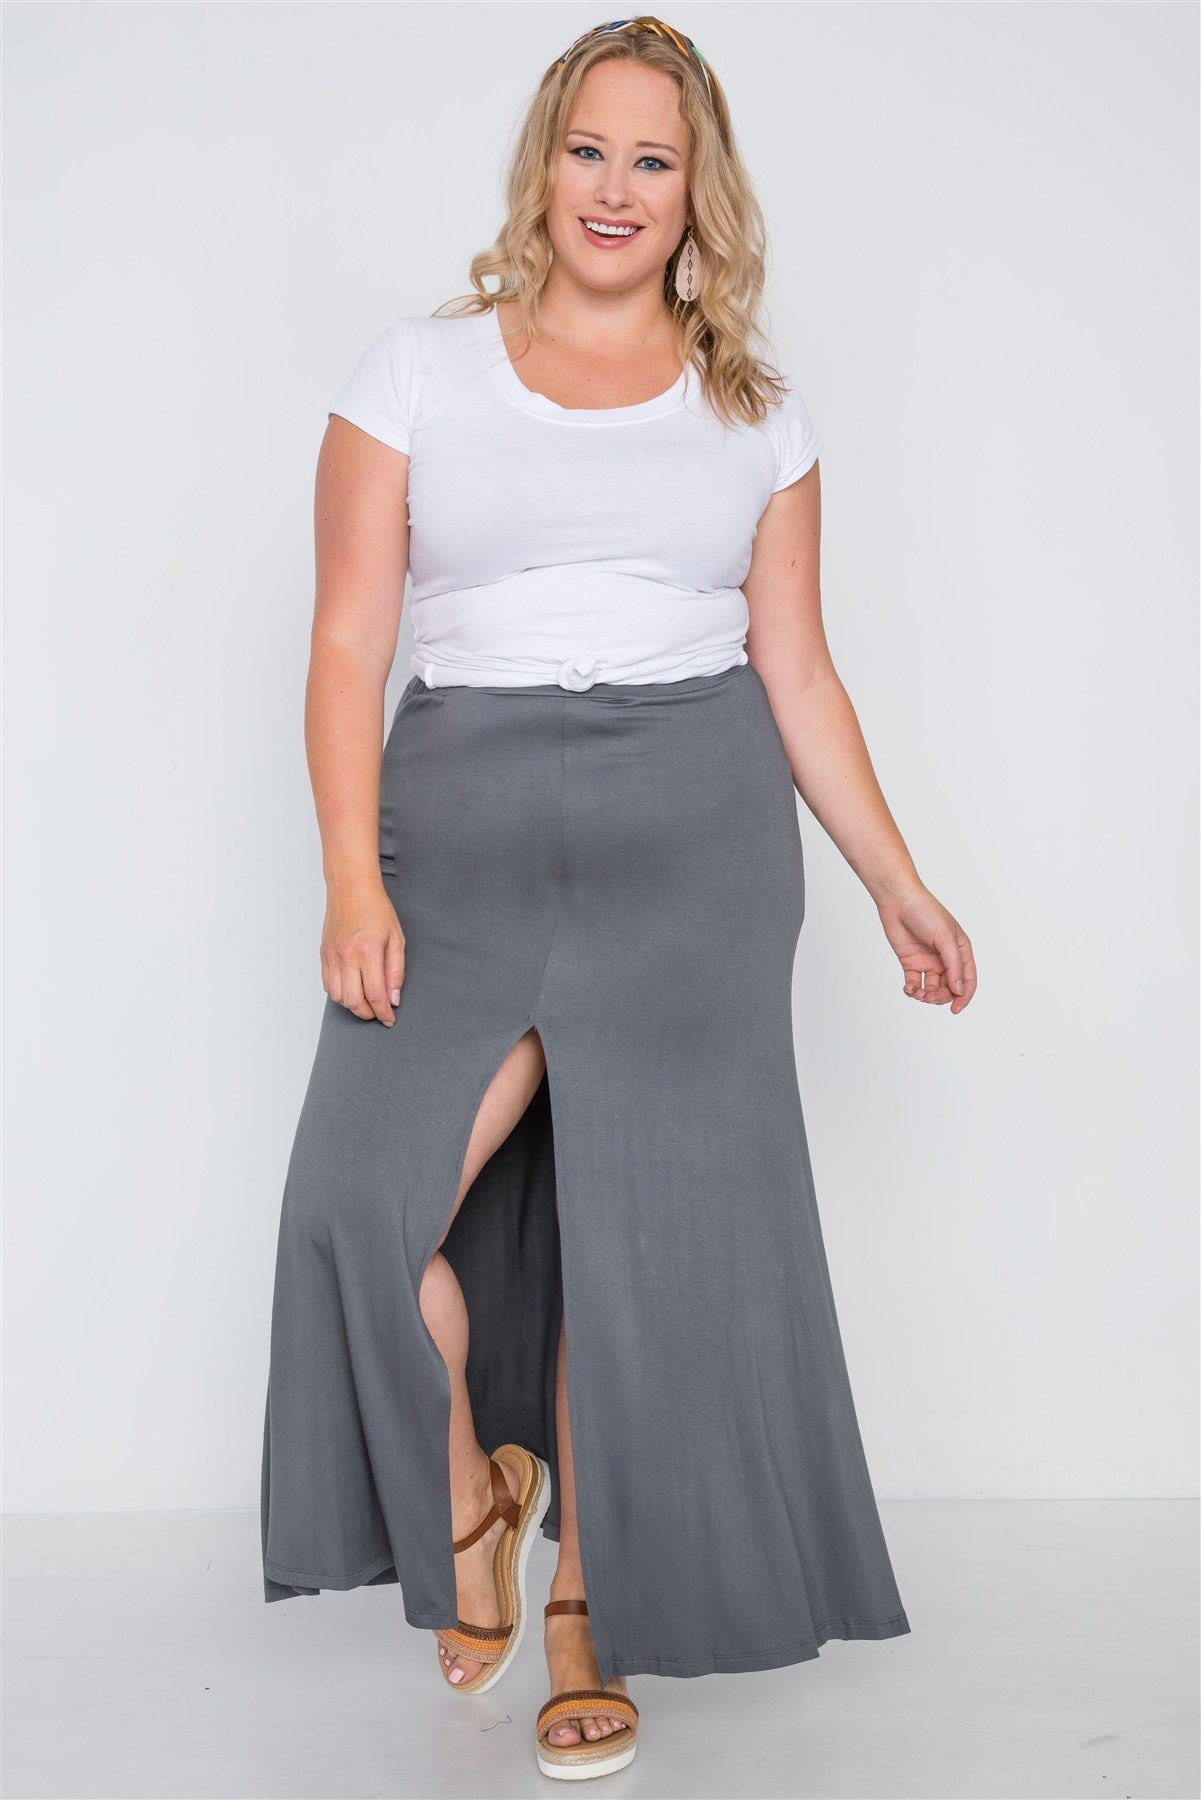 Plus Size Charcoal Basic Front Slit Maxi Skirt - FitBeautyTrends